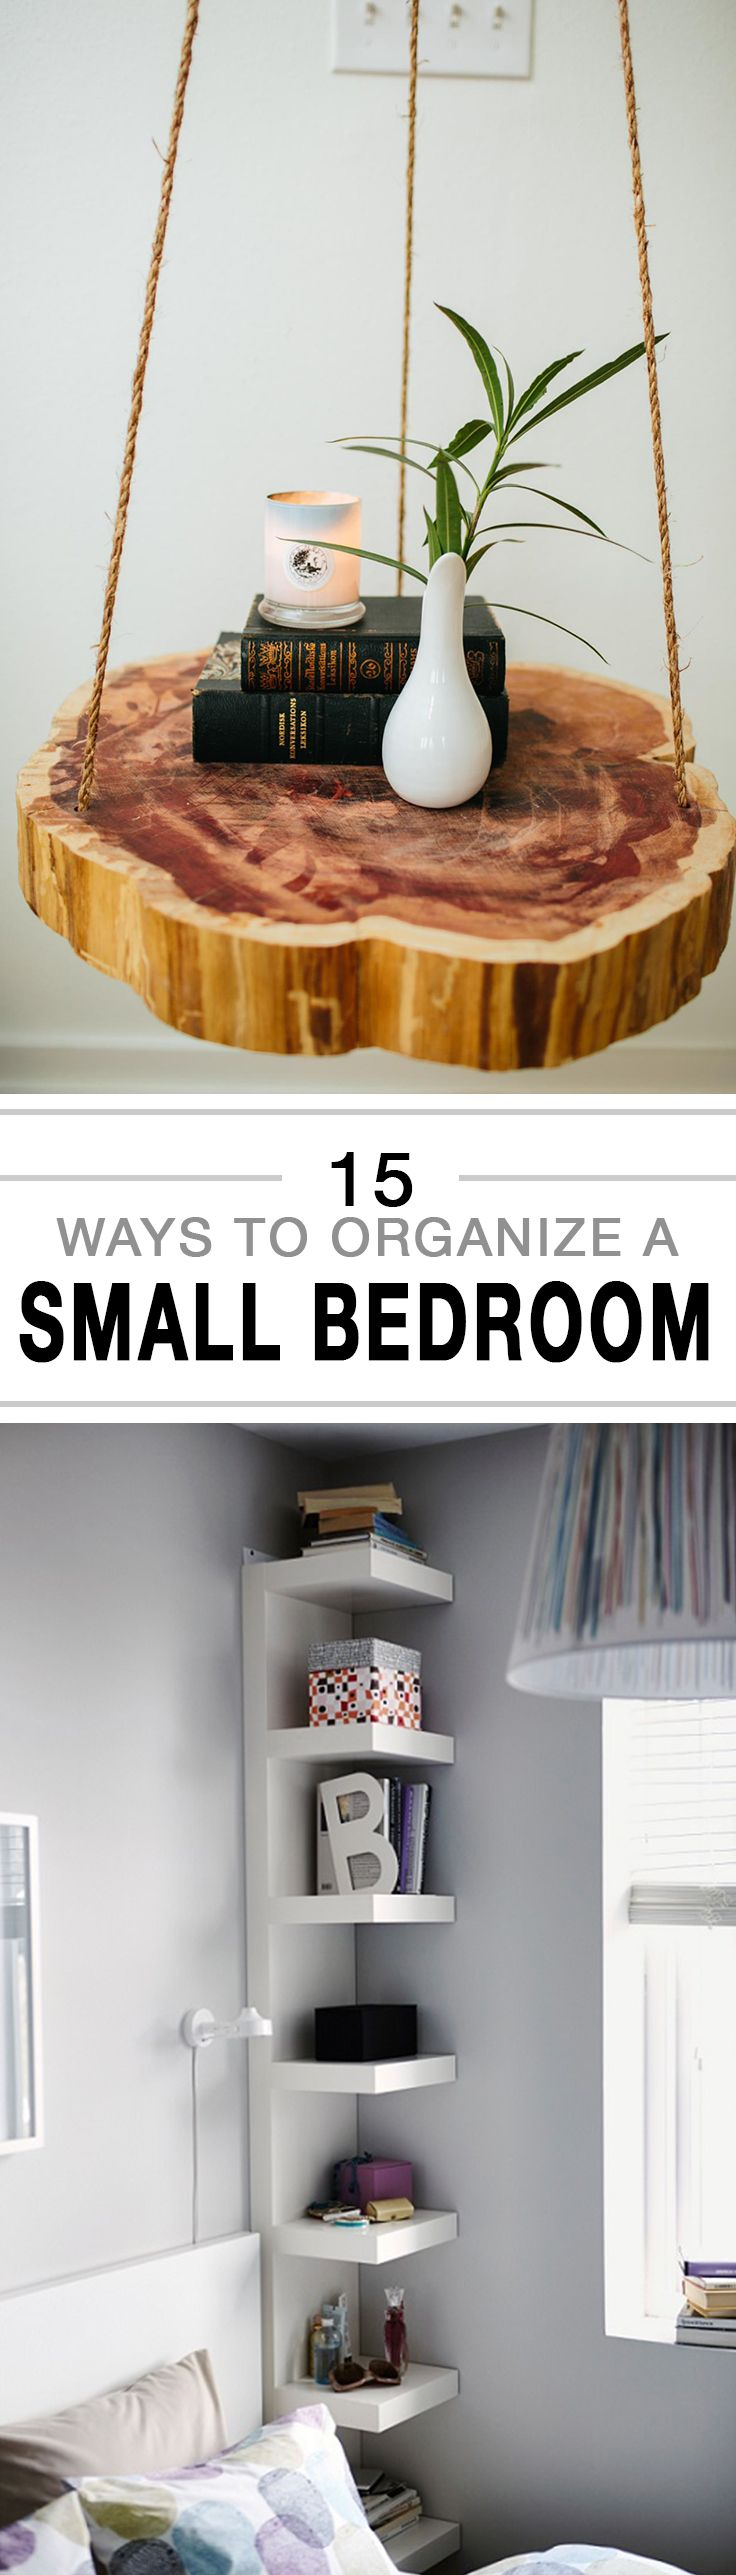 15 Ways to Organize a Small Bedroom | PB Apartment | Small bedroom ...